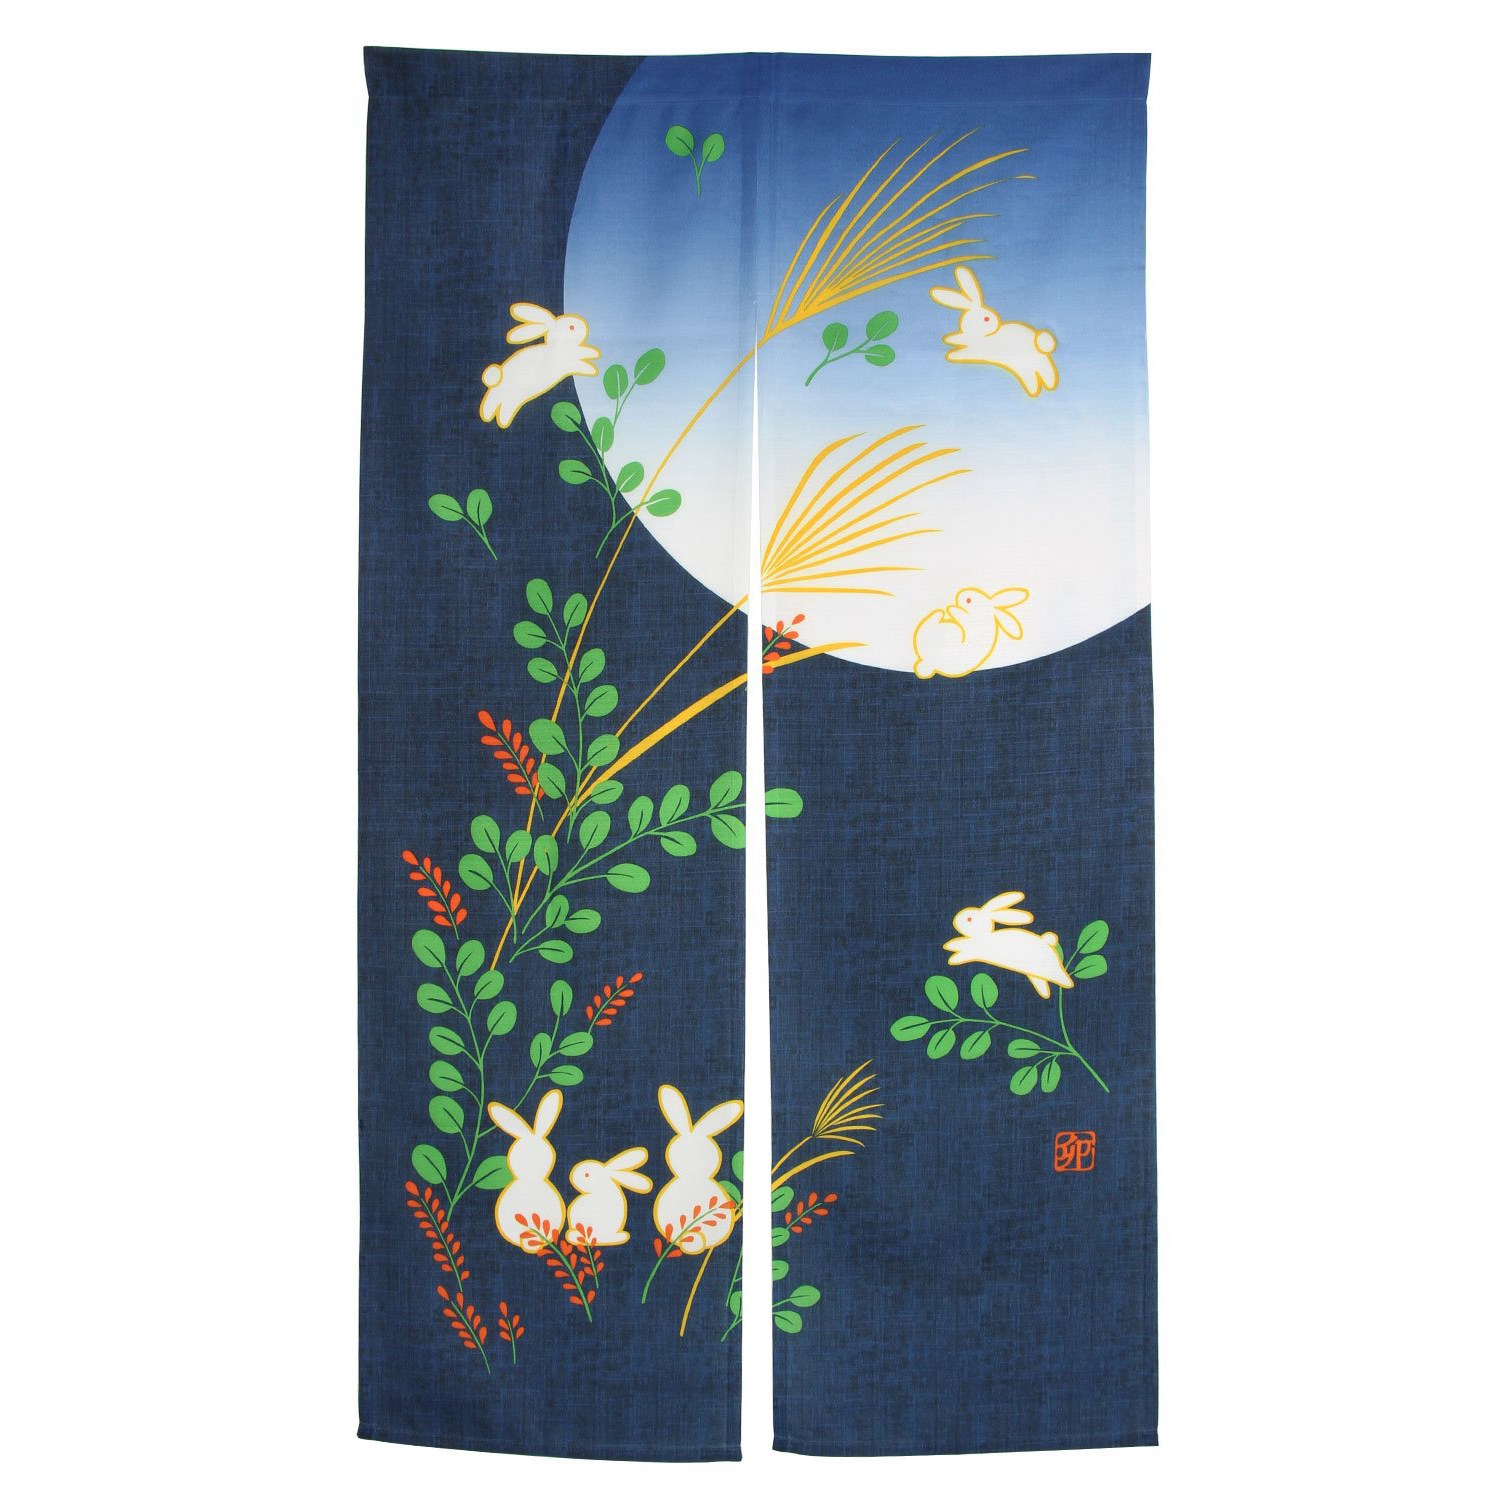 PHFU-Japanese Doorway Curtain Noren Rabbit Under Moon For Home Decoration 85X150Cm